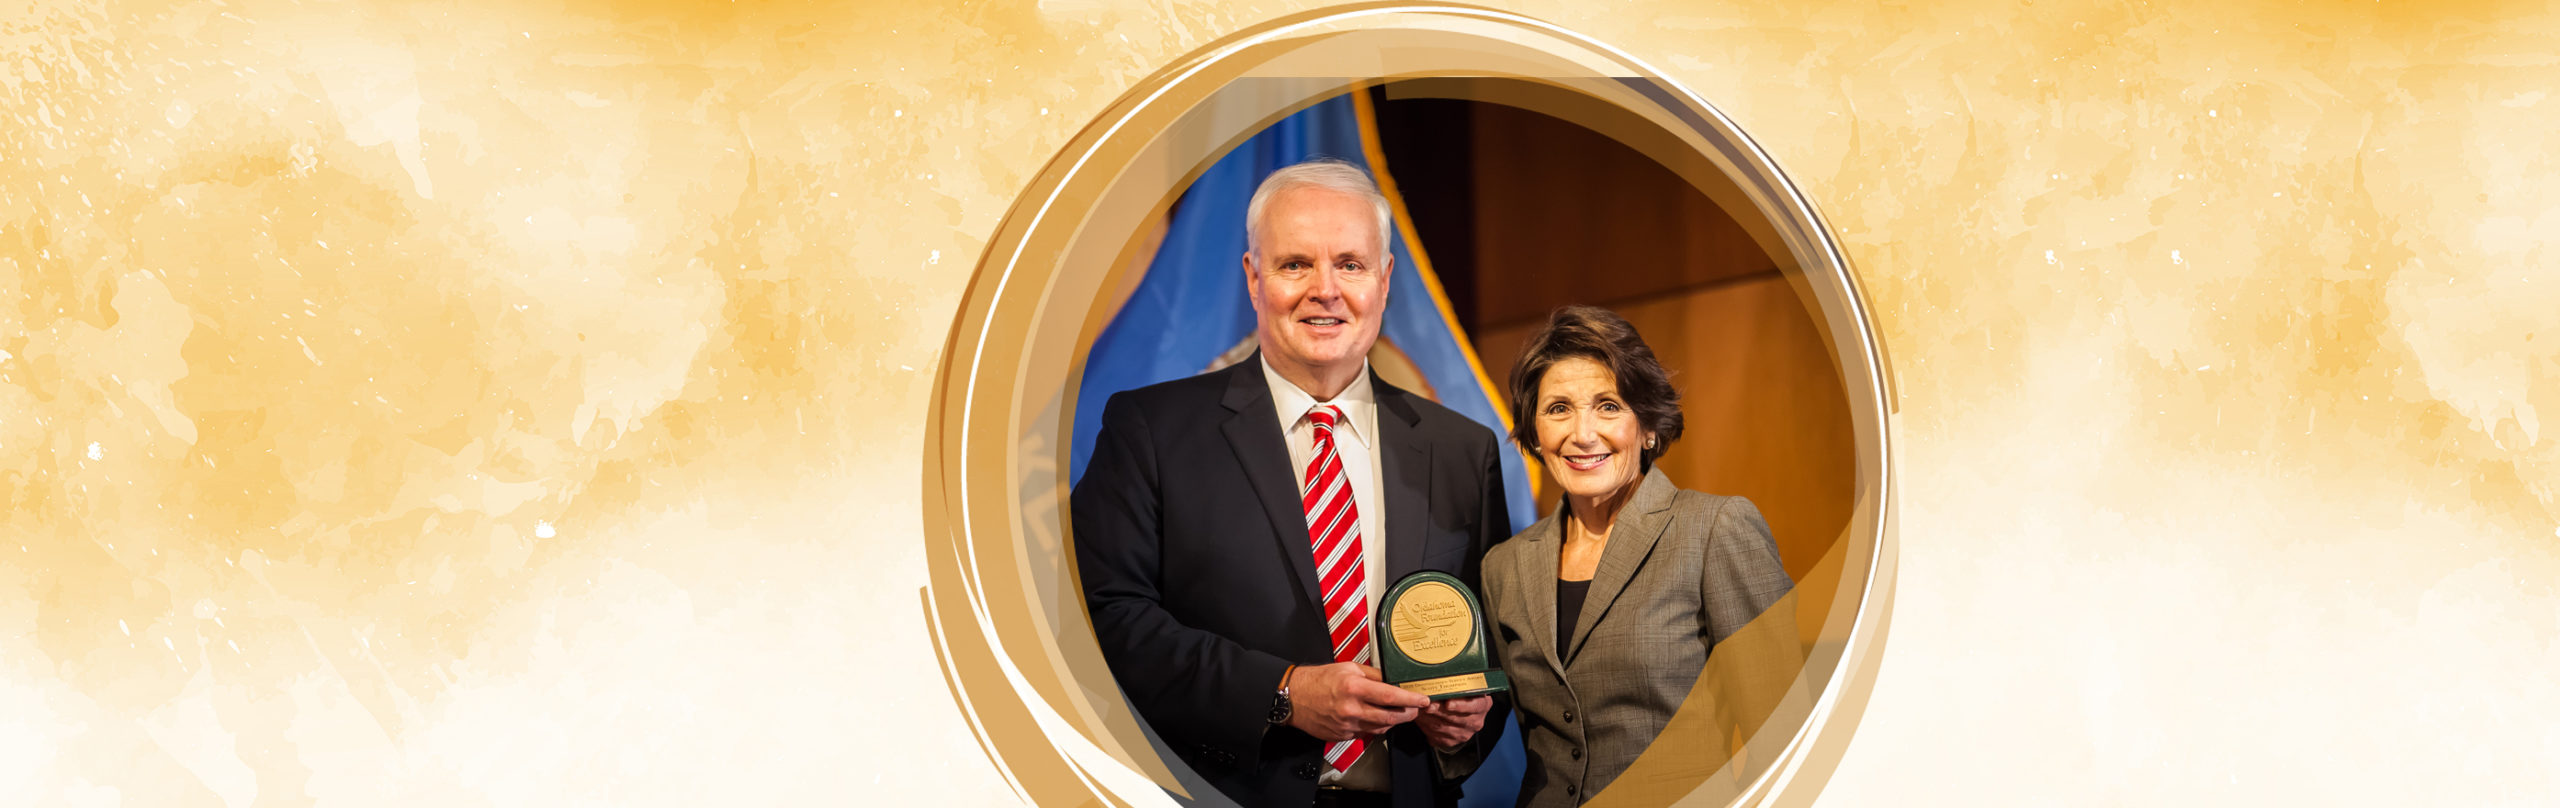 Thompson Receives Distinguished Service Award From Oklahoma Foundation for Excellence